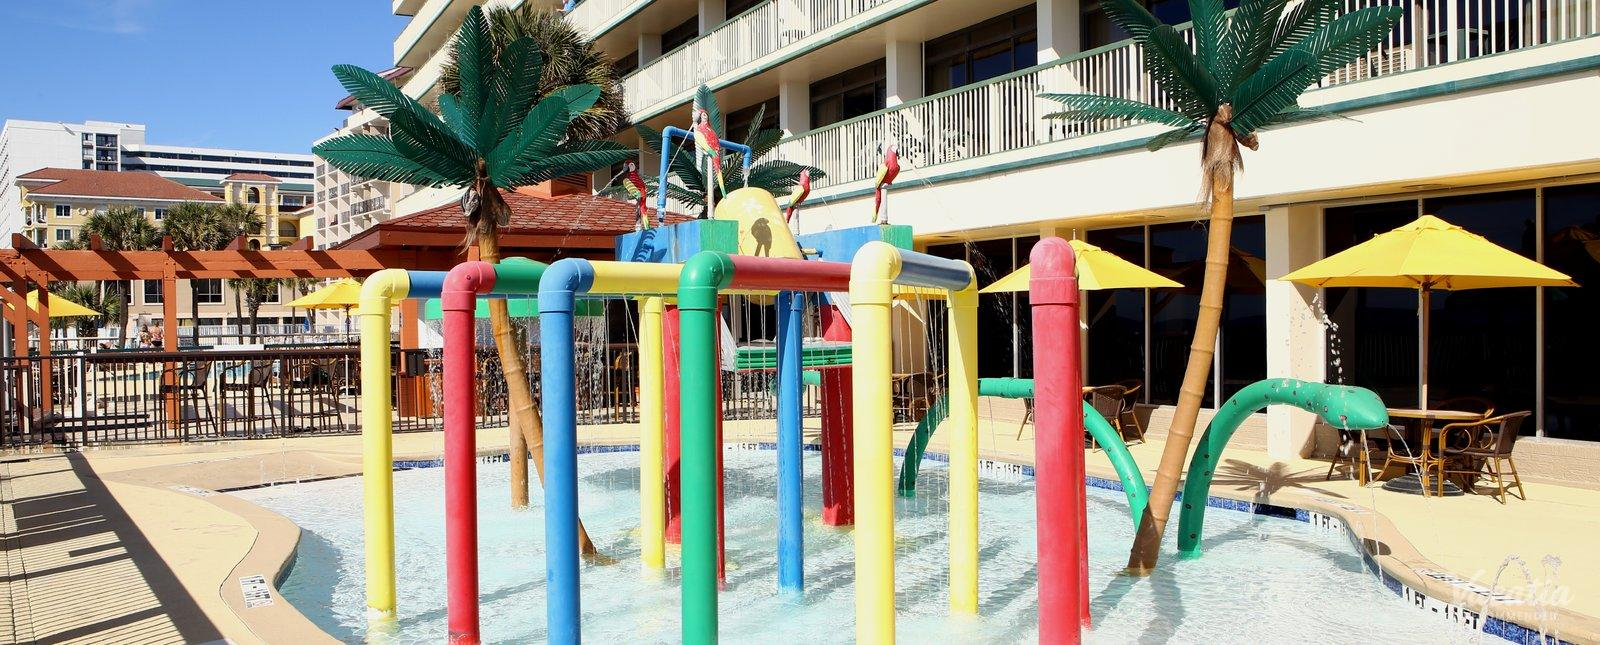 Westgate Myrtle Beach Oceanfront Resort water playground for kids